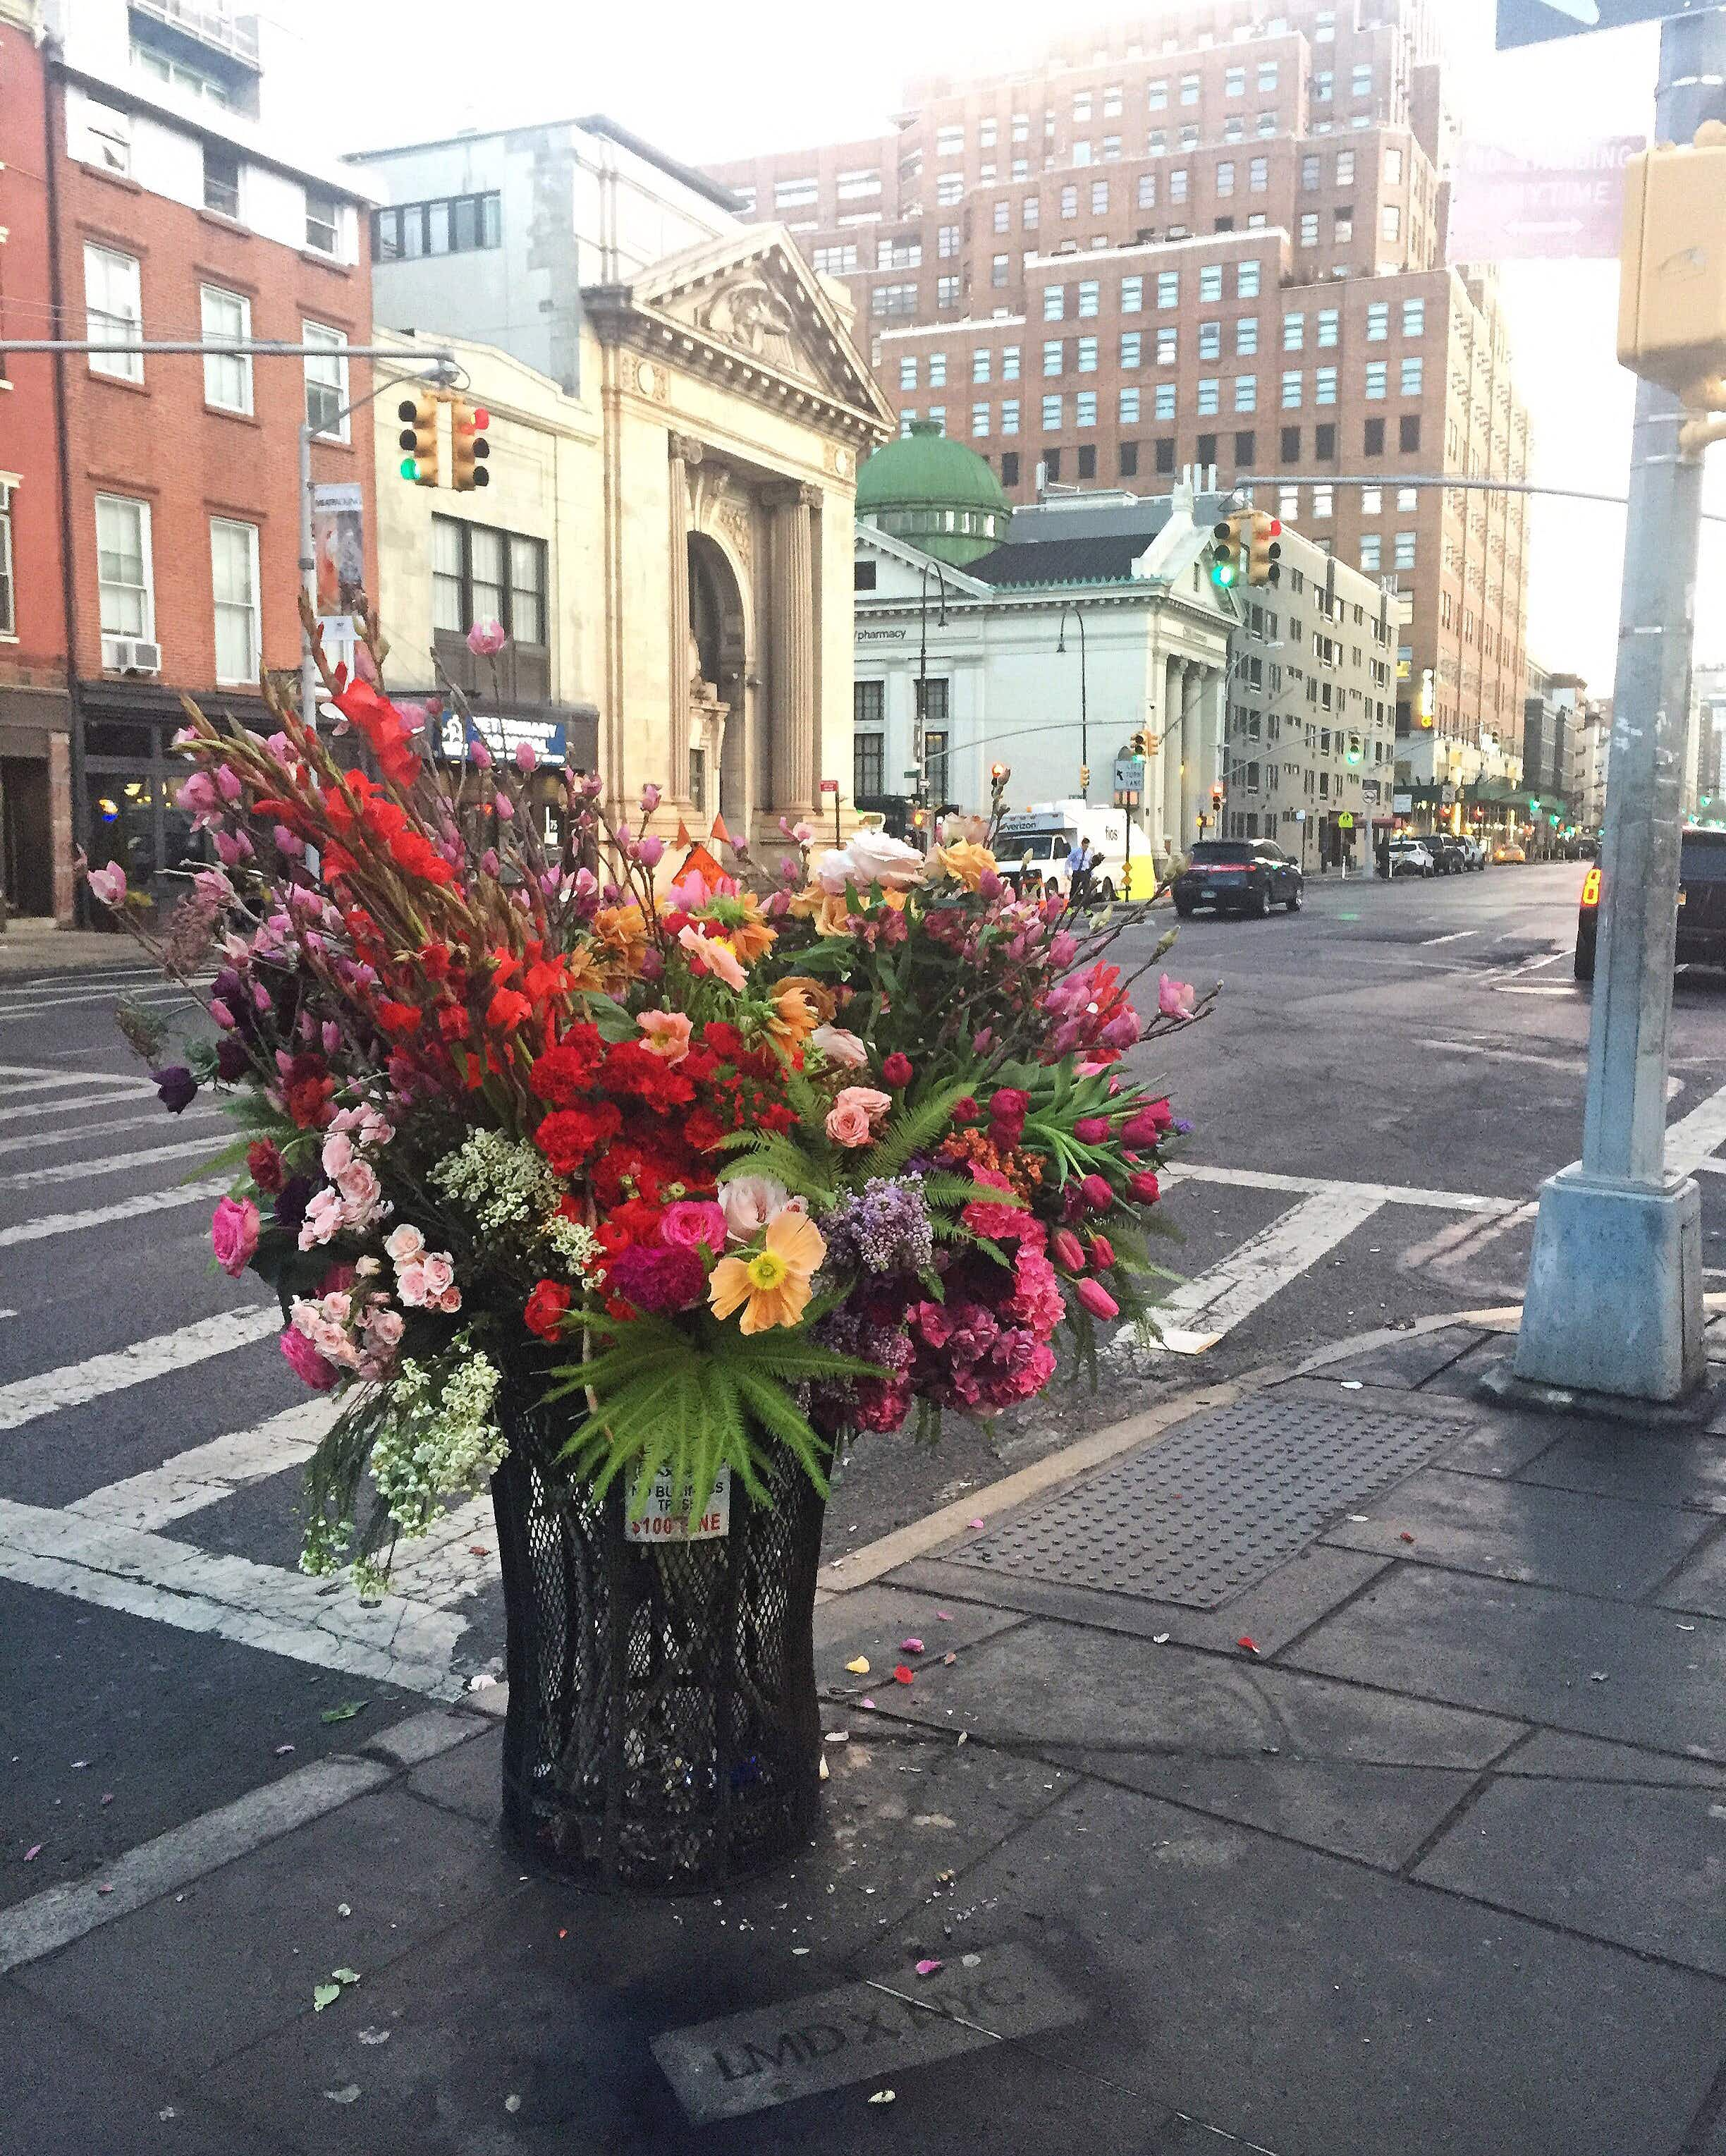 A floral designer is transforming trash cans around New York City